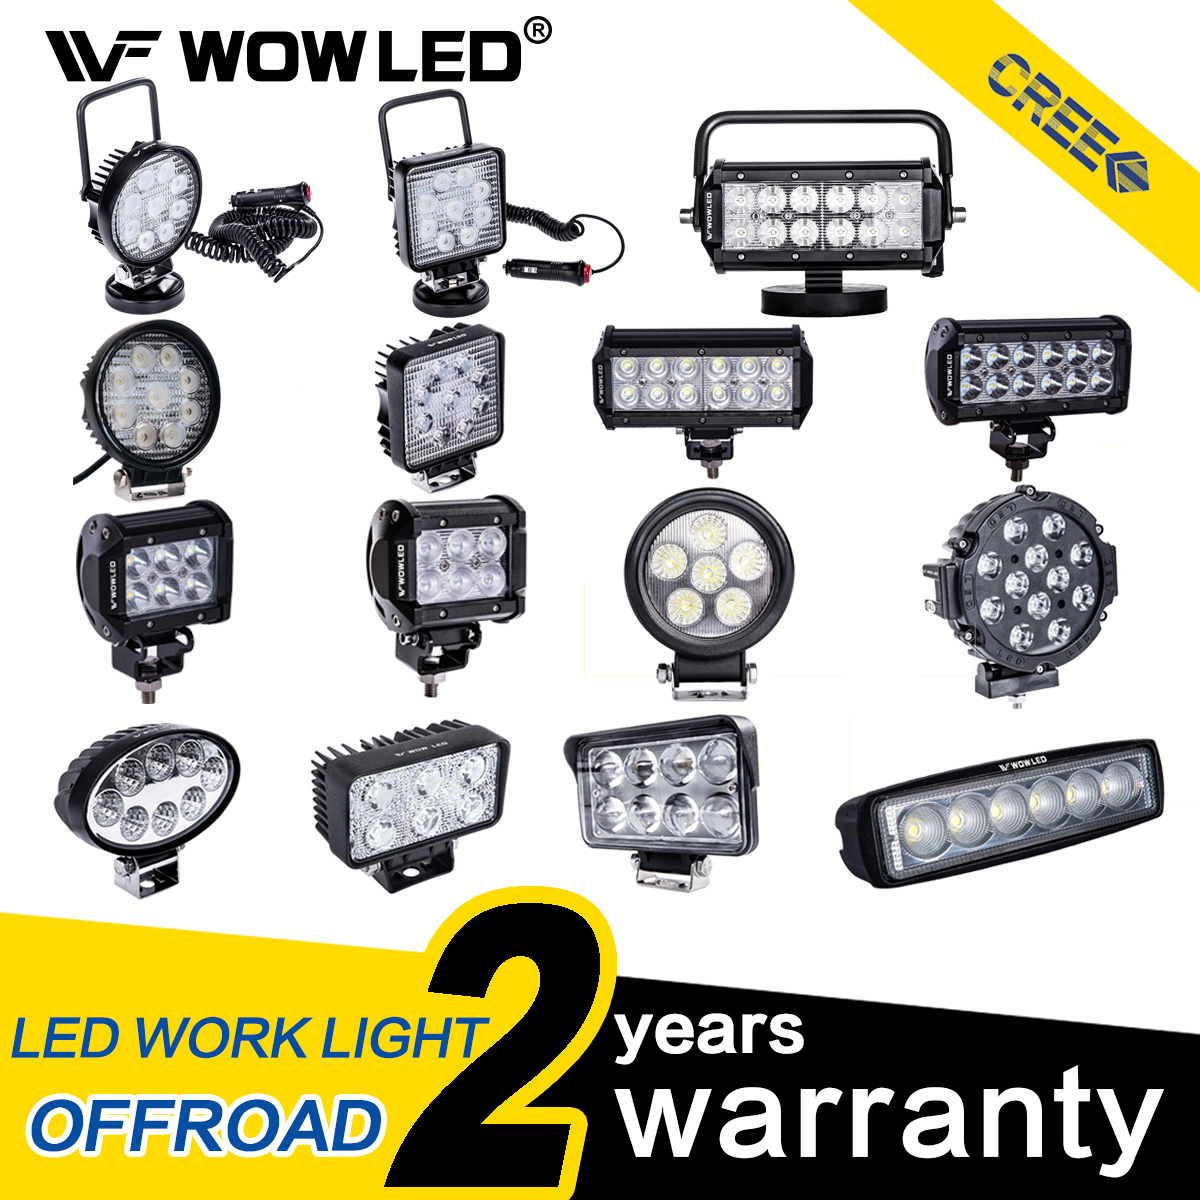 2X 60 W DEL Work Light Bar Flood Spot Light 12 V 24 V OFF ROAD AUTO CAMION SUV Lampe